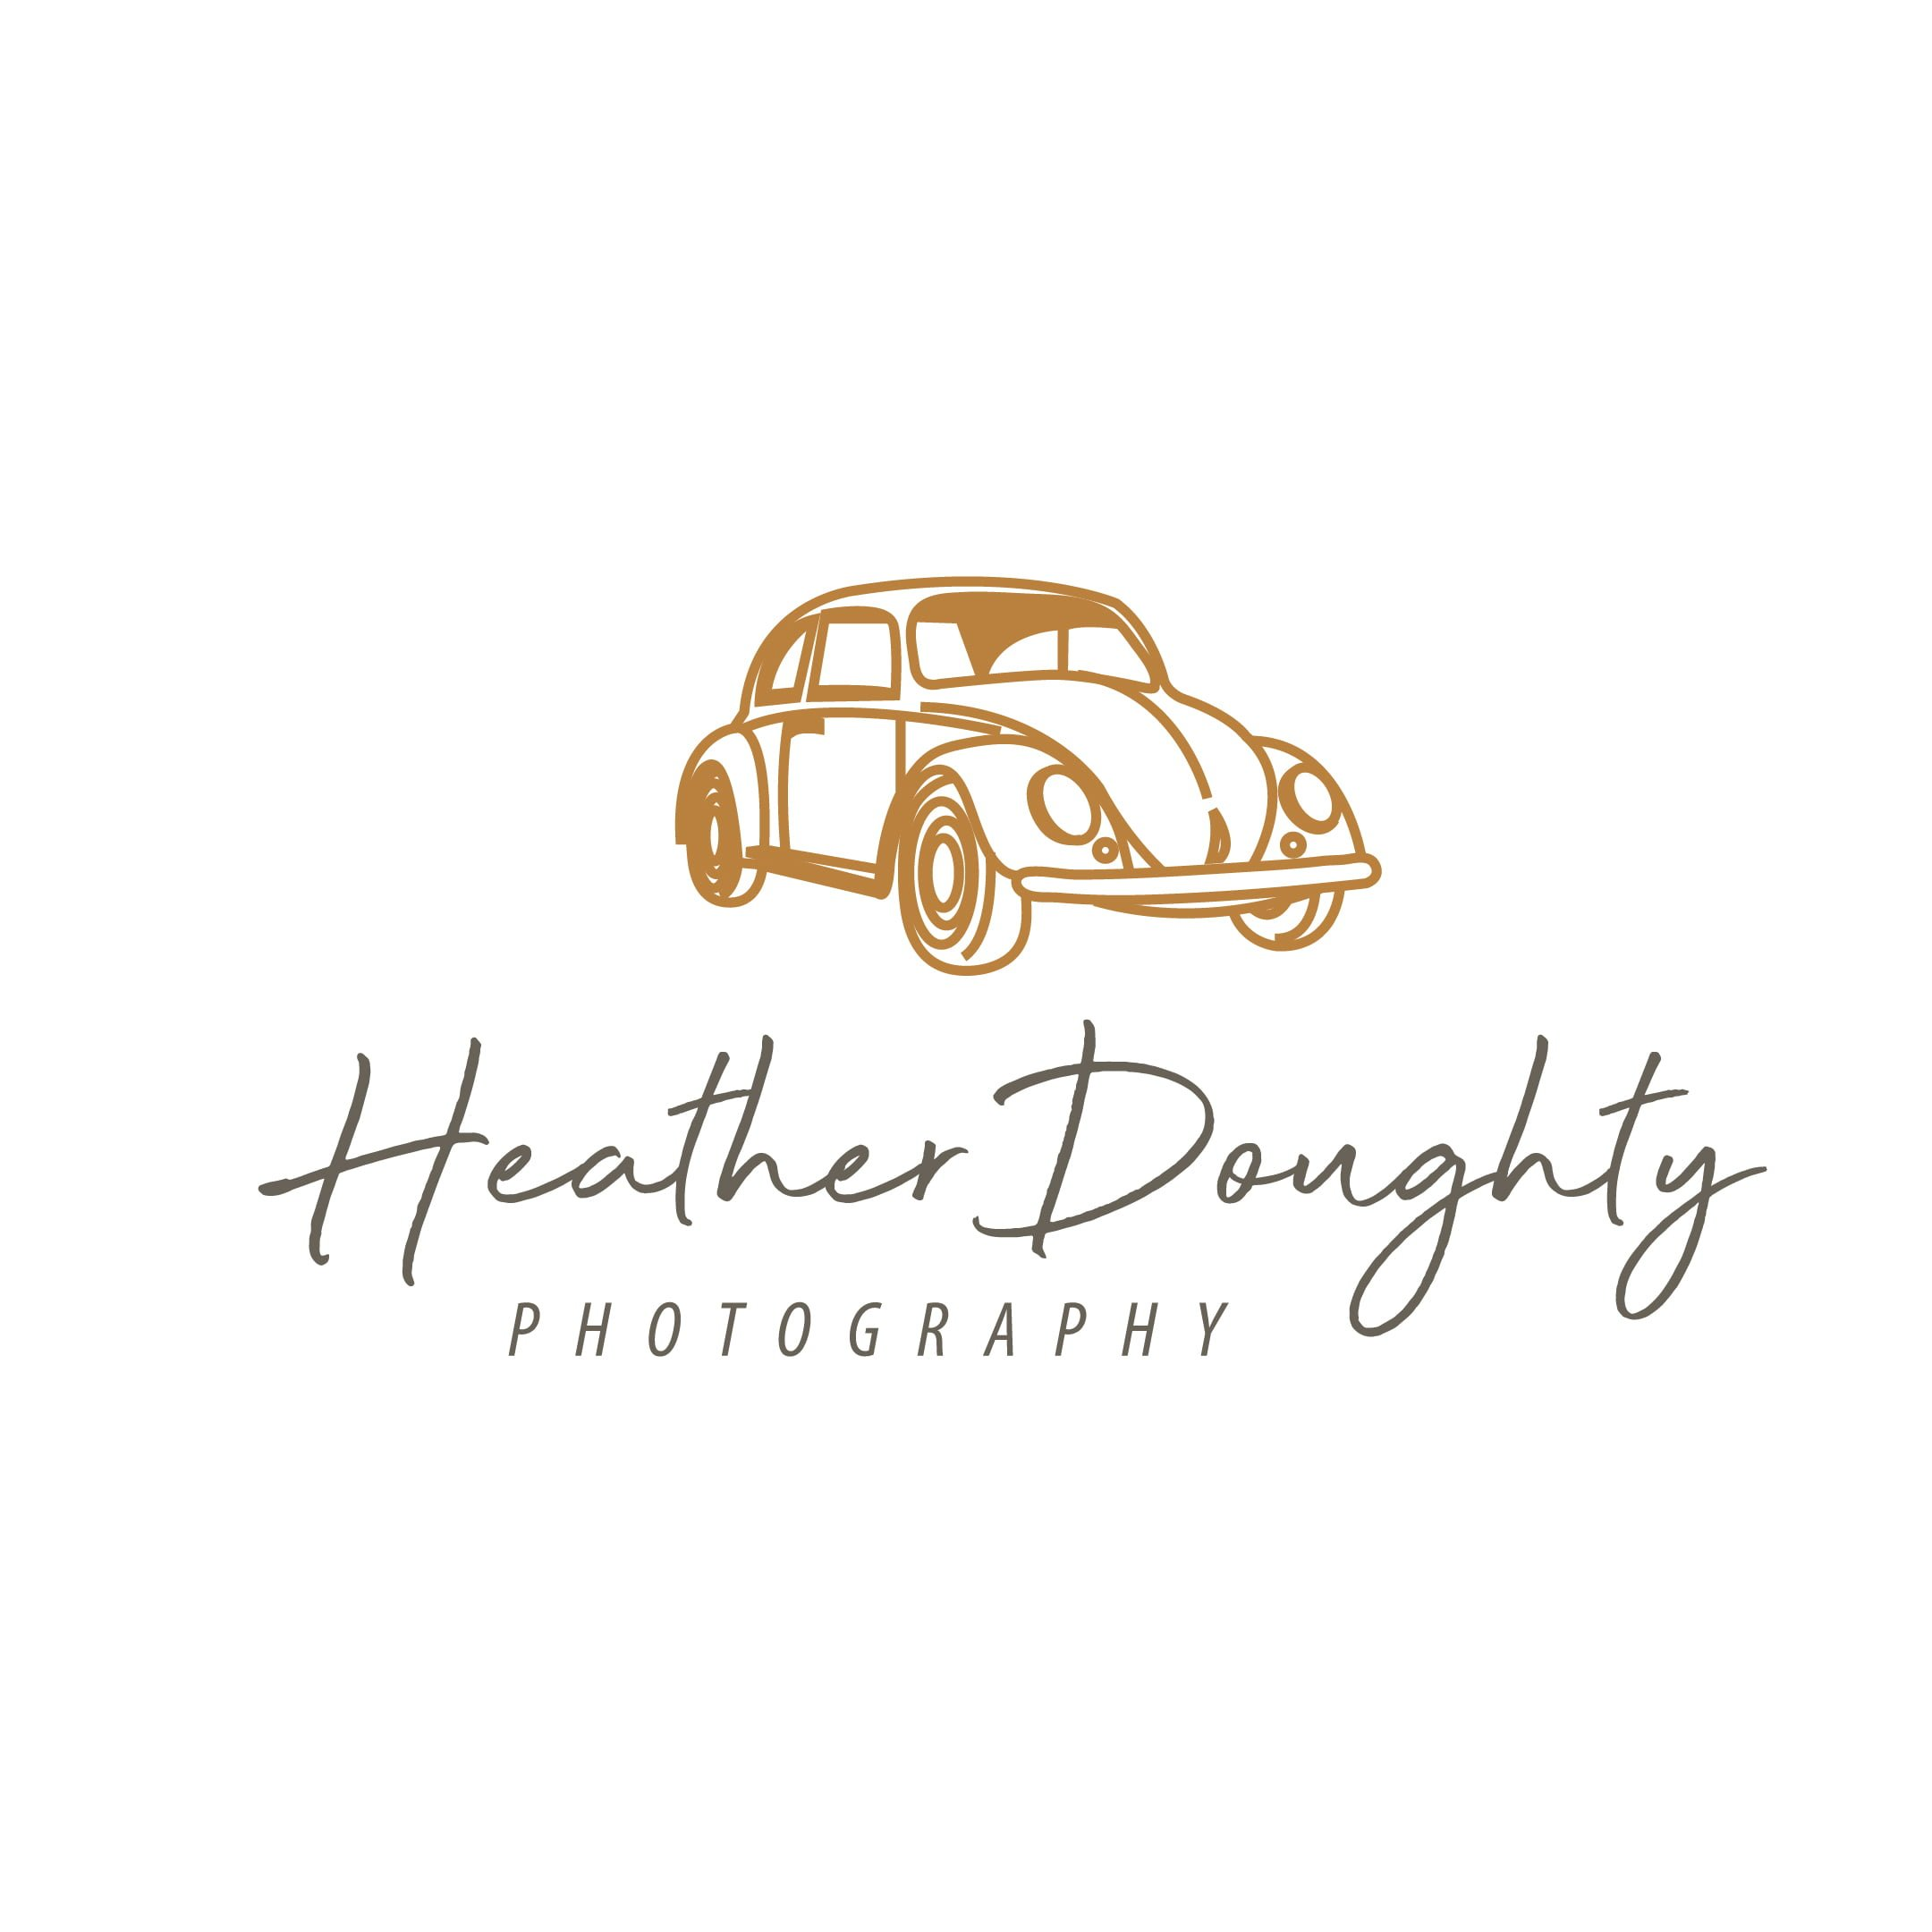 https://heatherdoughtyphotography.com/wp-content/uploads/2019/09/Heather-Doughty-Logo.jpg